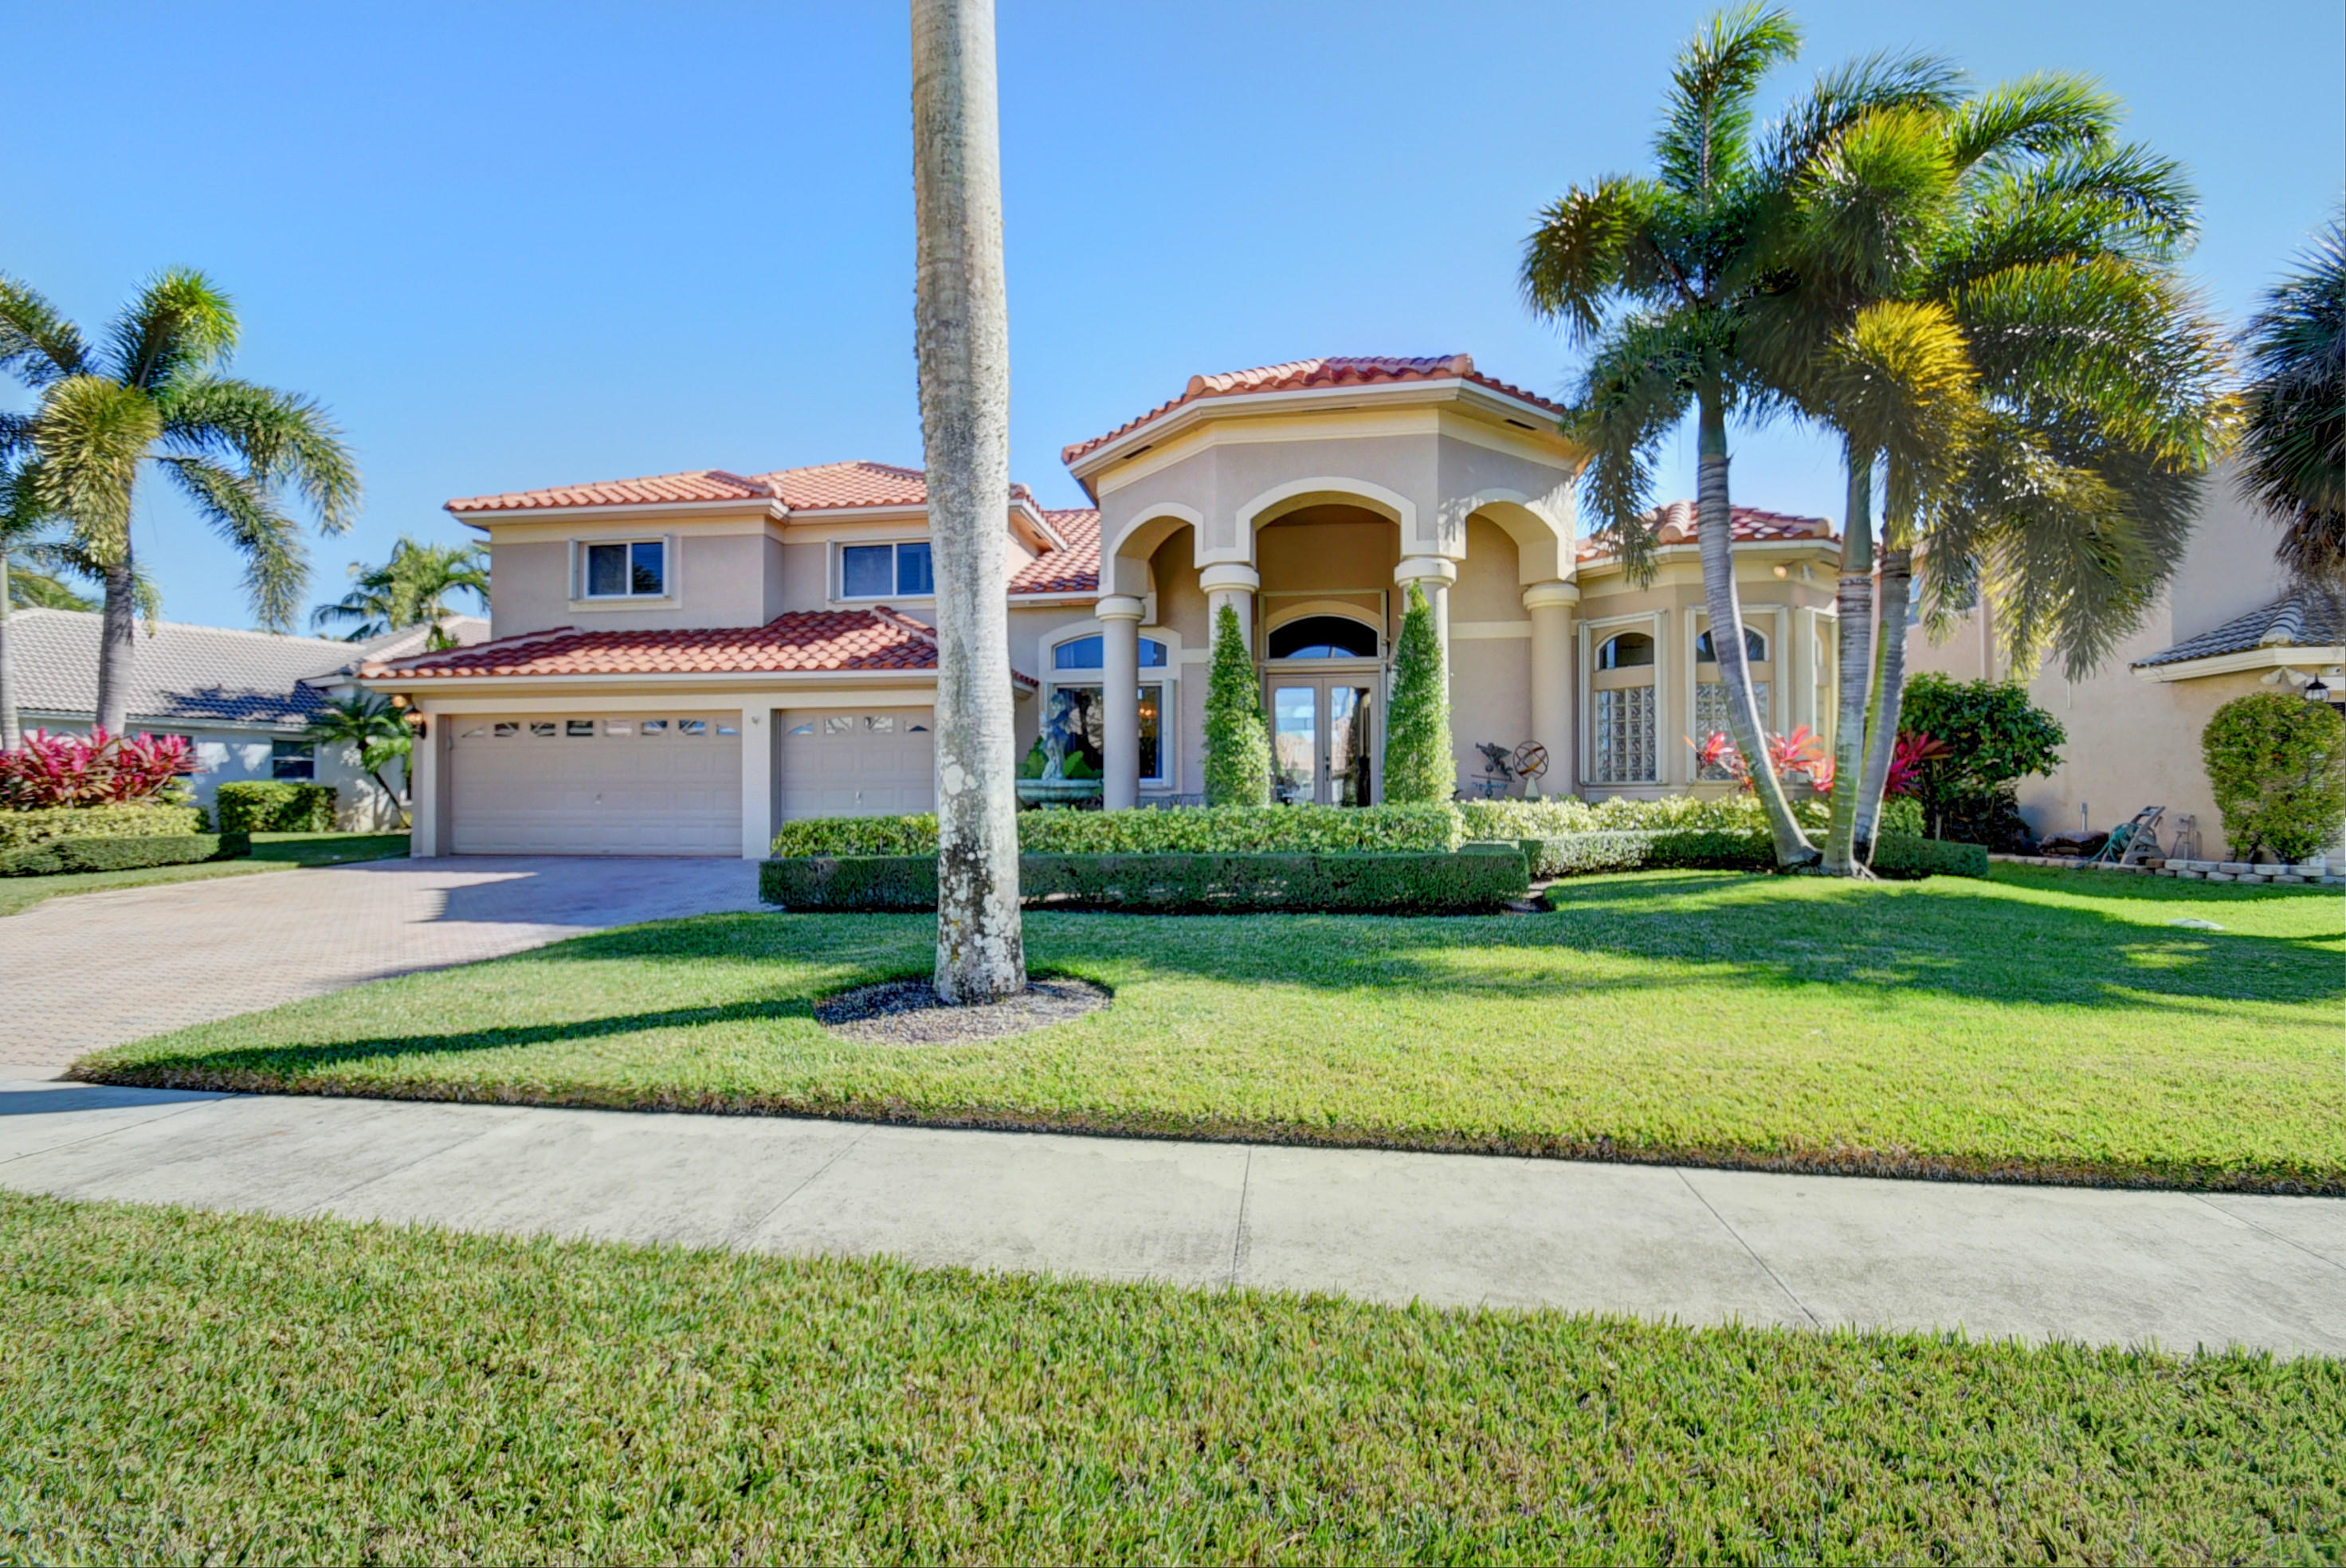 Home for sale in Boca Isles Boca Raton Florida